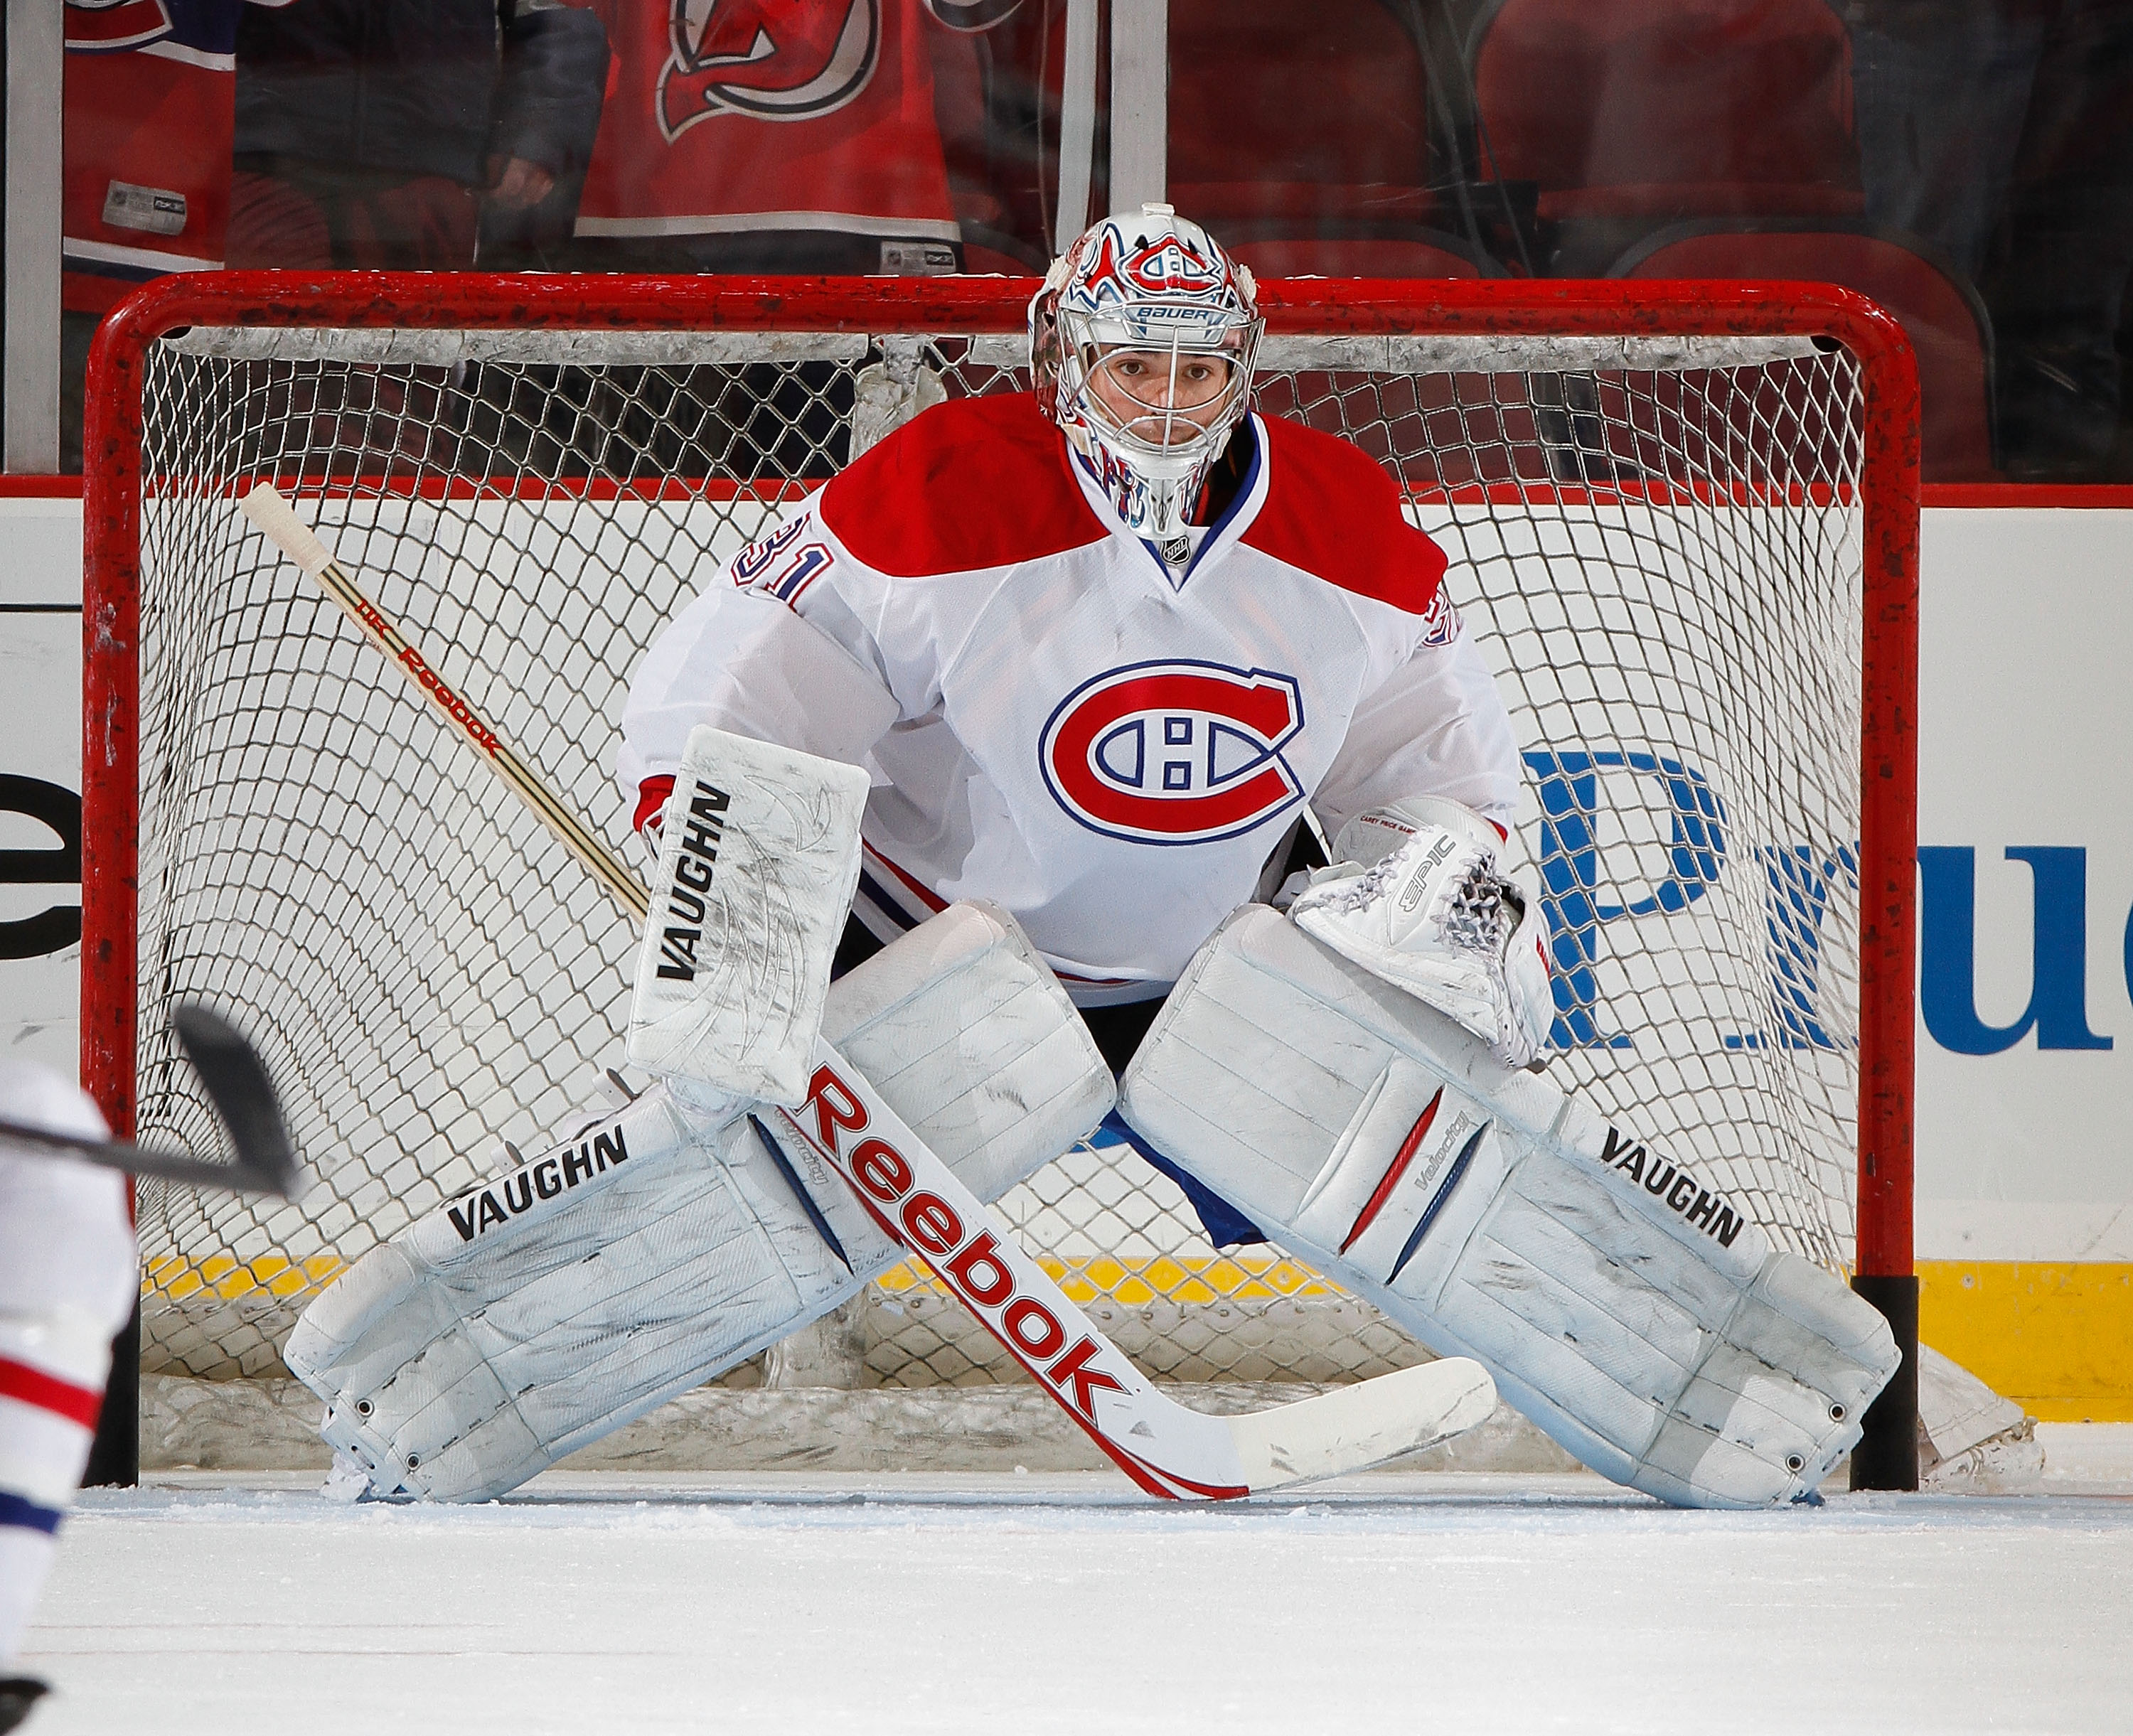 Carey Price has played in a league high 25 games this season for Montreal